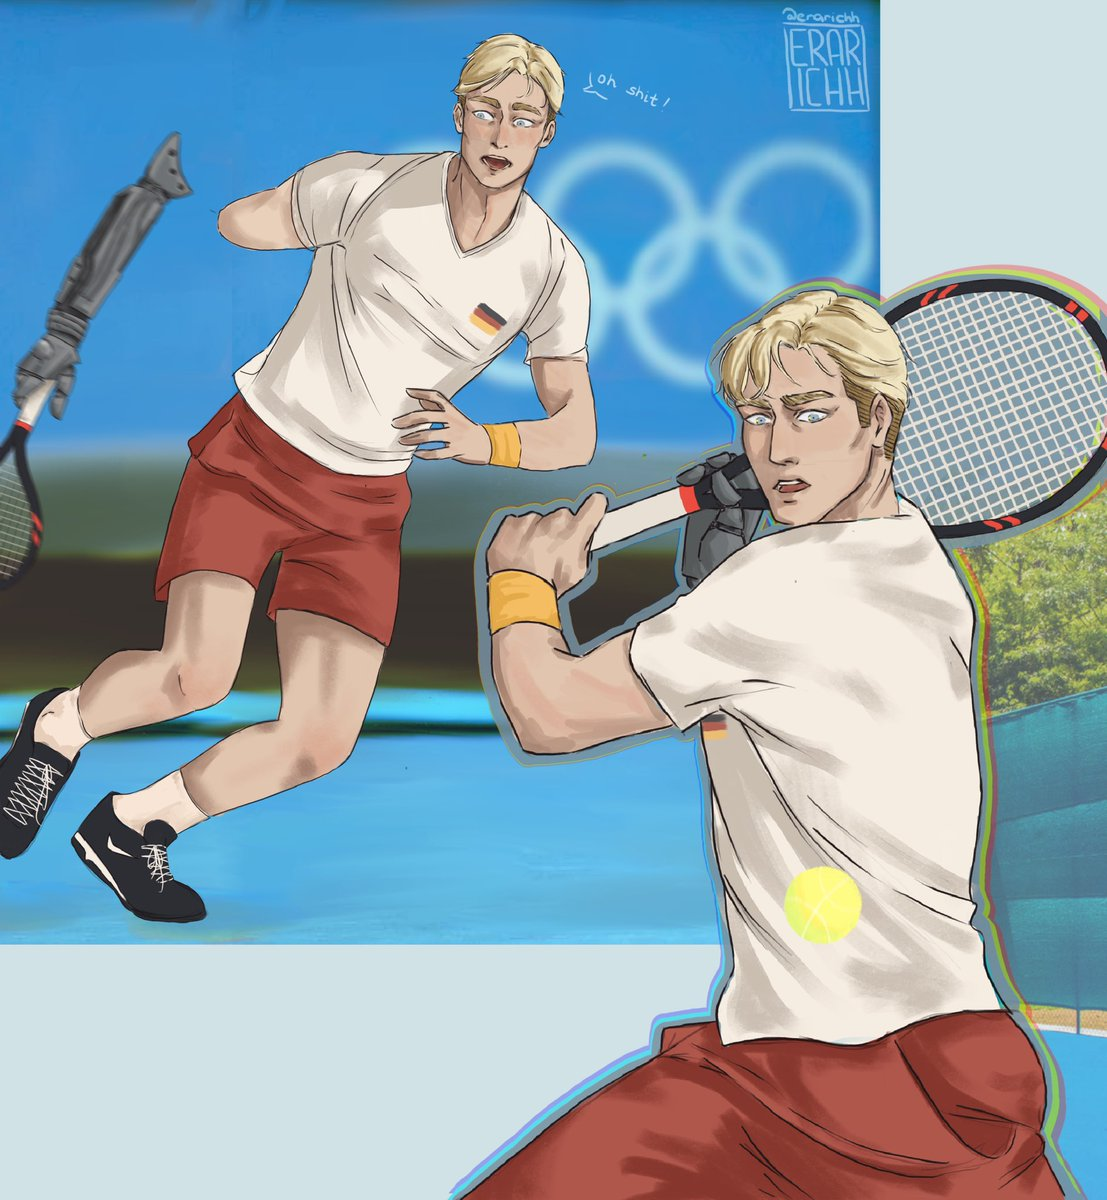 Erwin Smith 🇩🇪  Tokyo Paralympics 2021  He thought his dream was over... but he had friends to give him a new one 🖤 ps.: he's not used to advanced technologies  #erwinsmith #aot #attackontitan